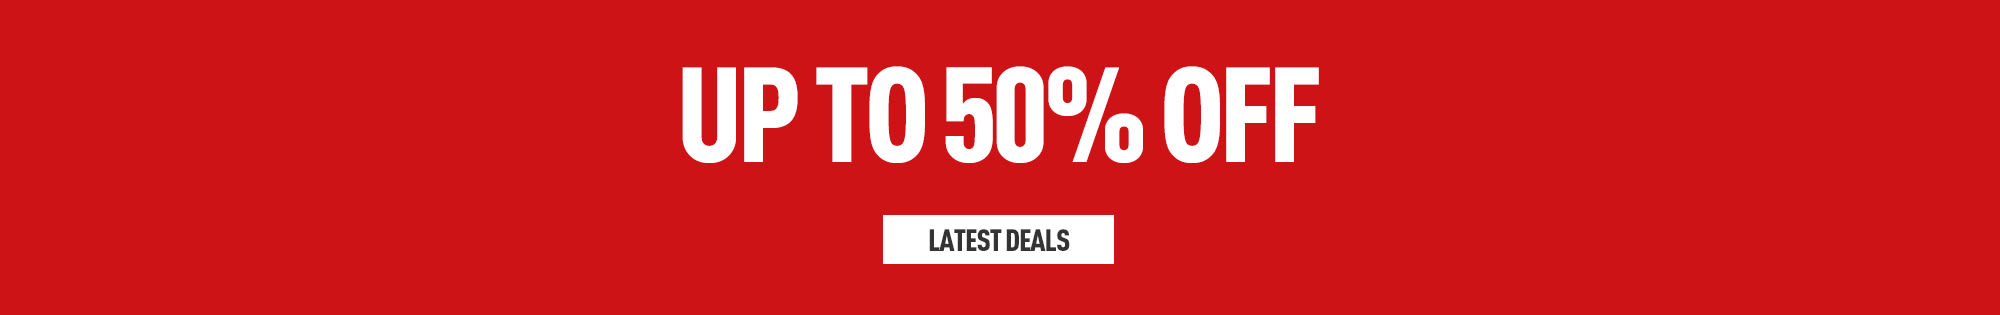 50% Off on Games, Consoles and Accessories - Homepage Banner